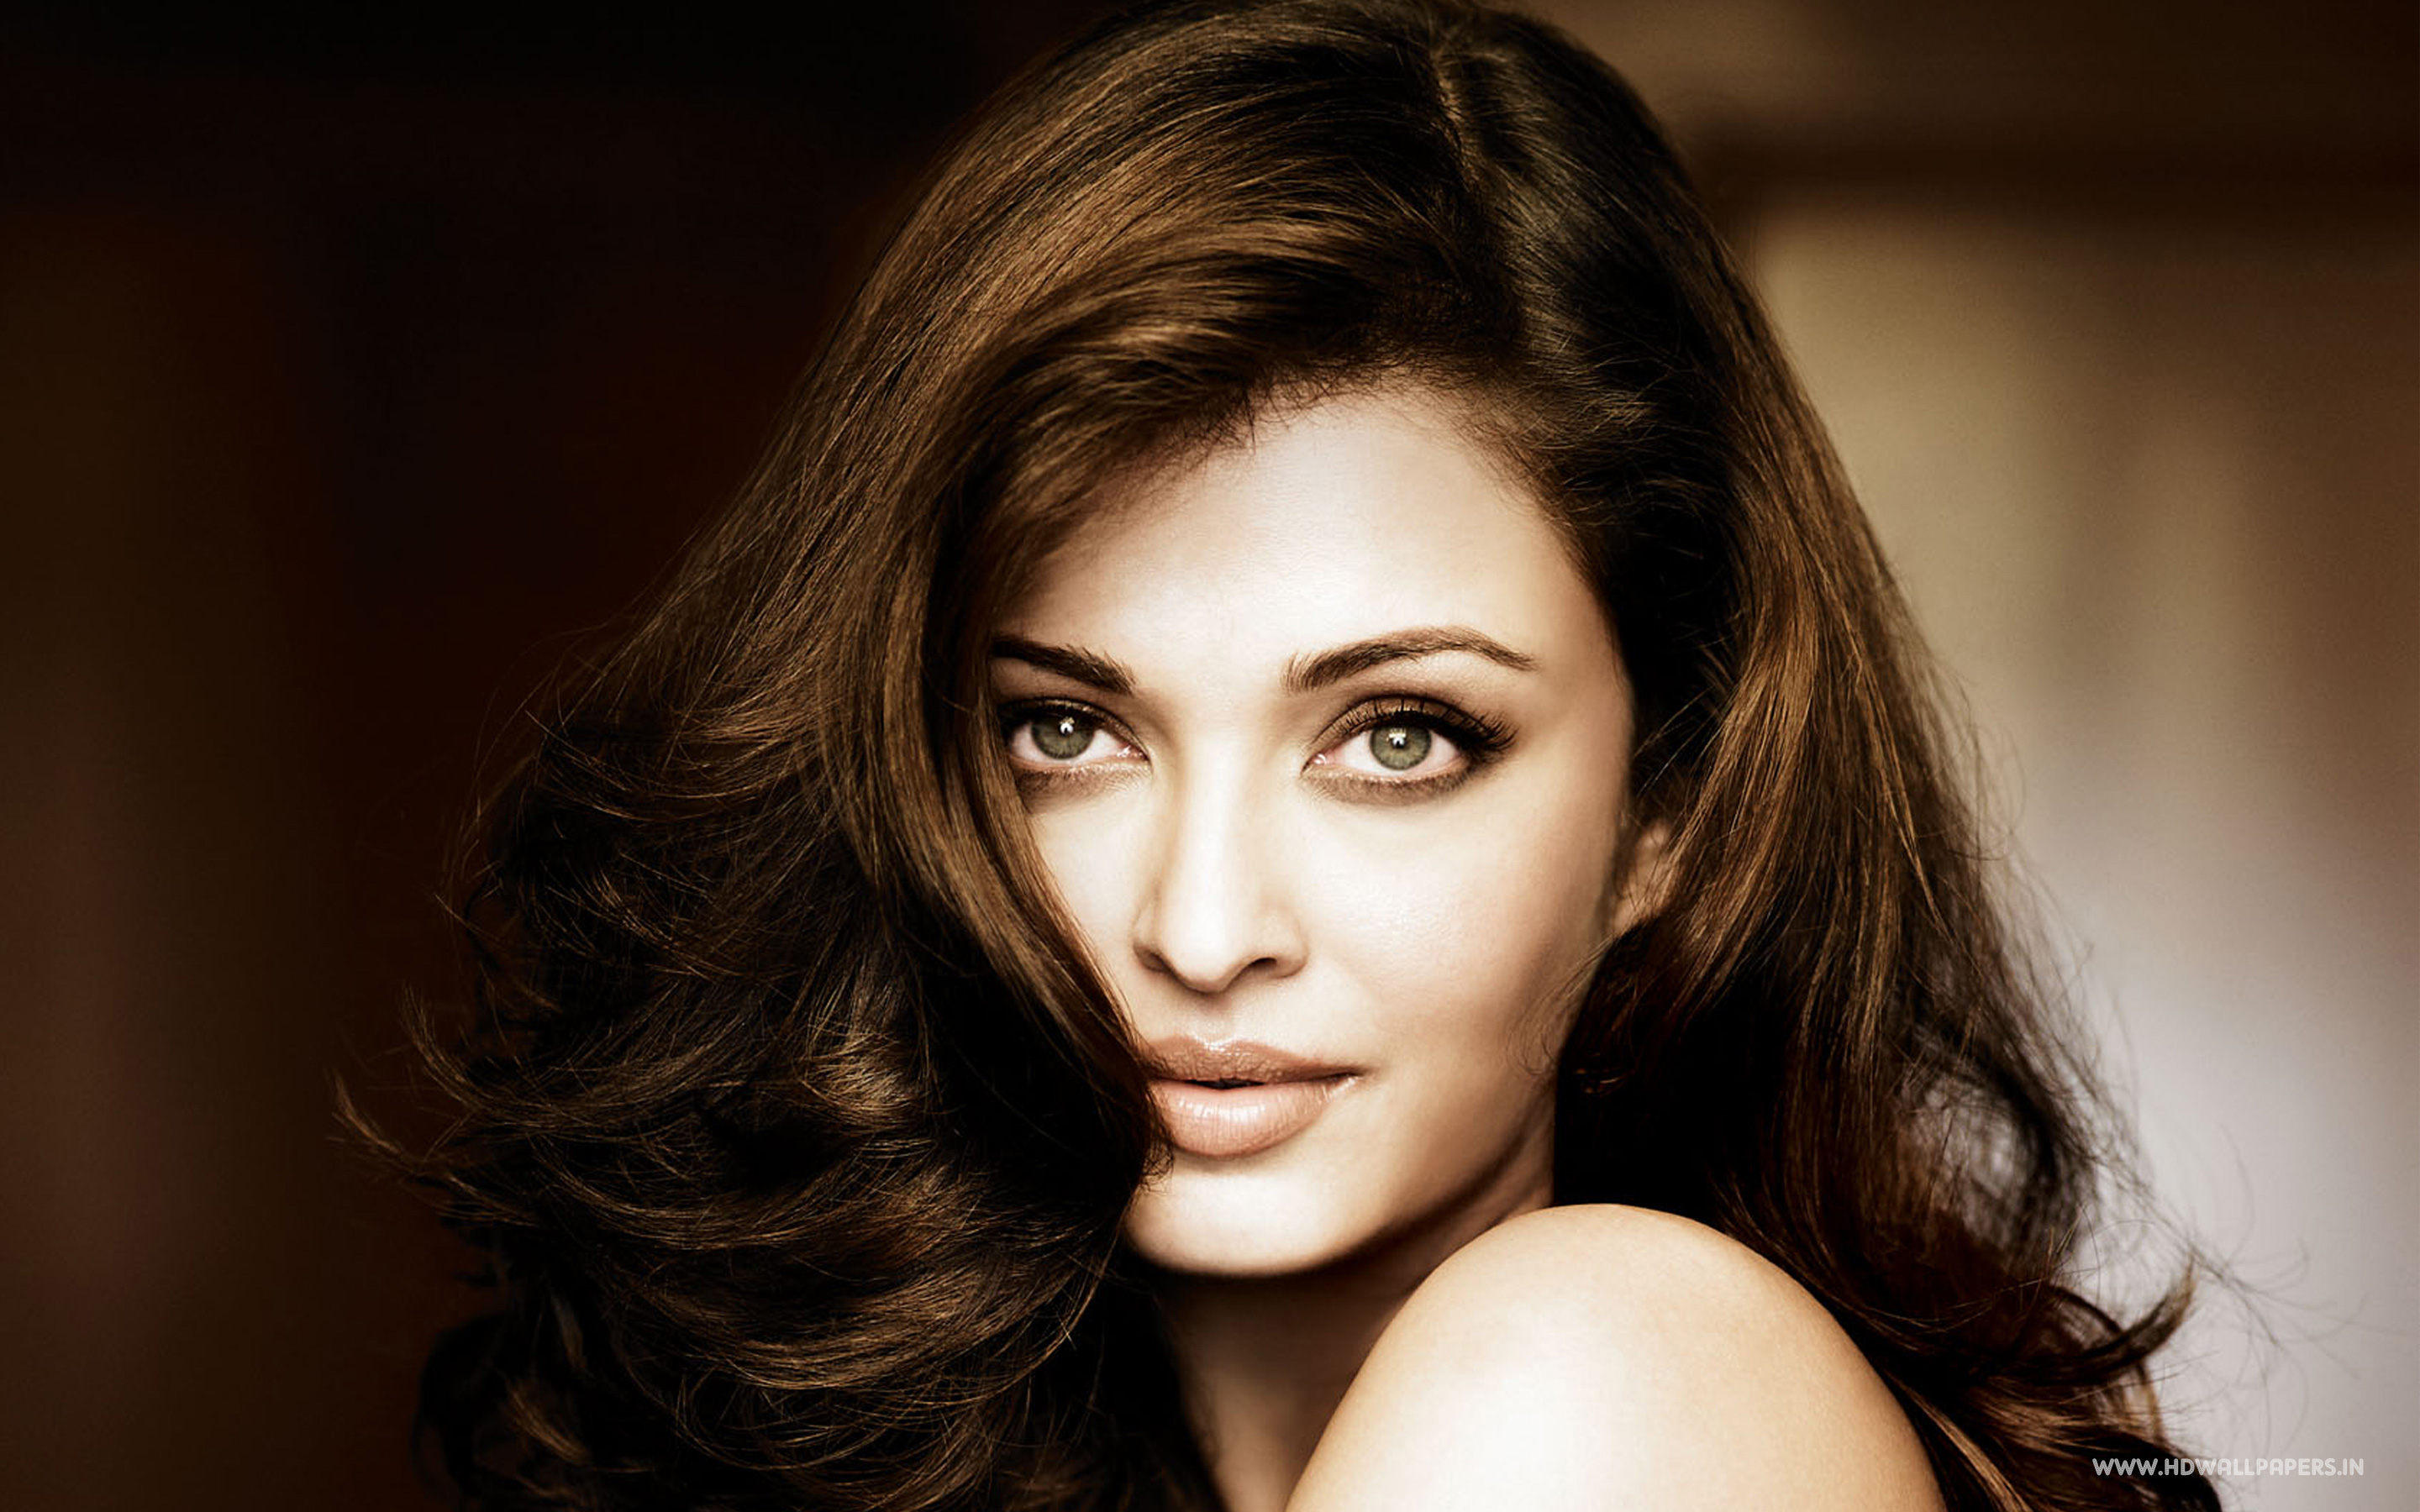 aishwarya rai 2016 hd wallpaper